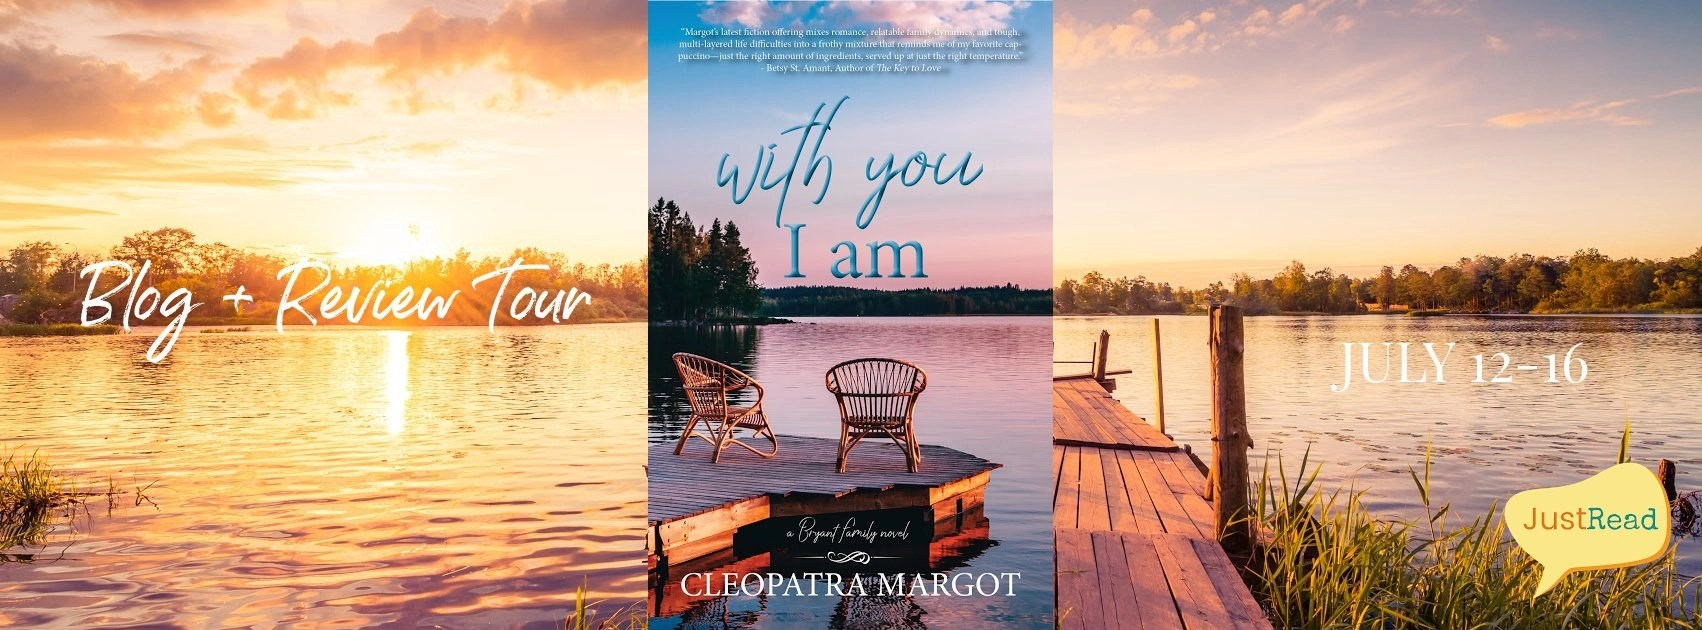 Welcome to the With You I Am Blog + Review Tour & Giveaway!